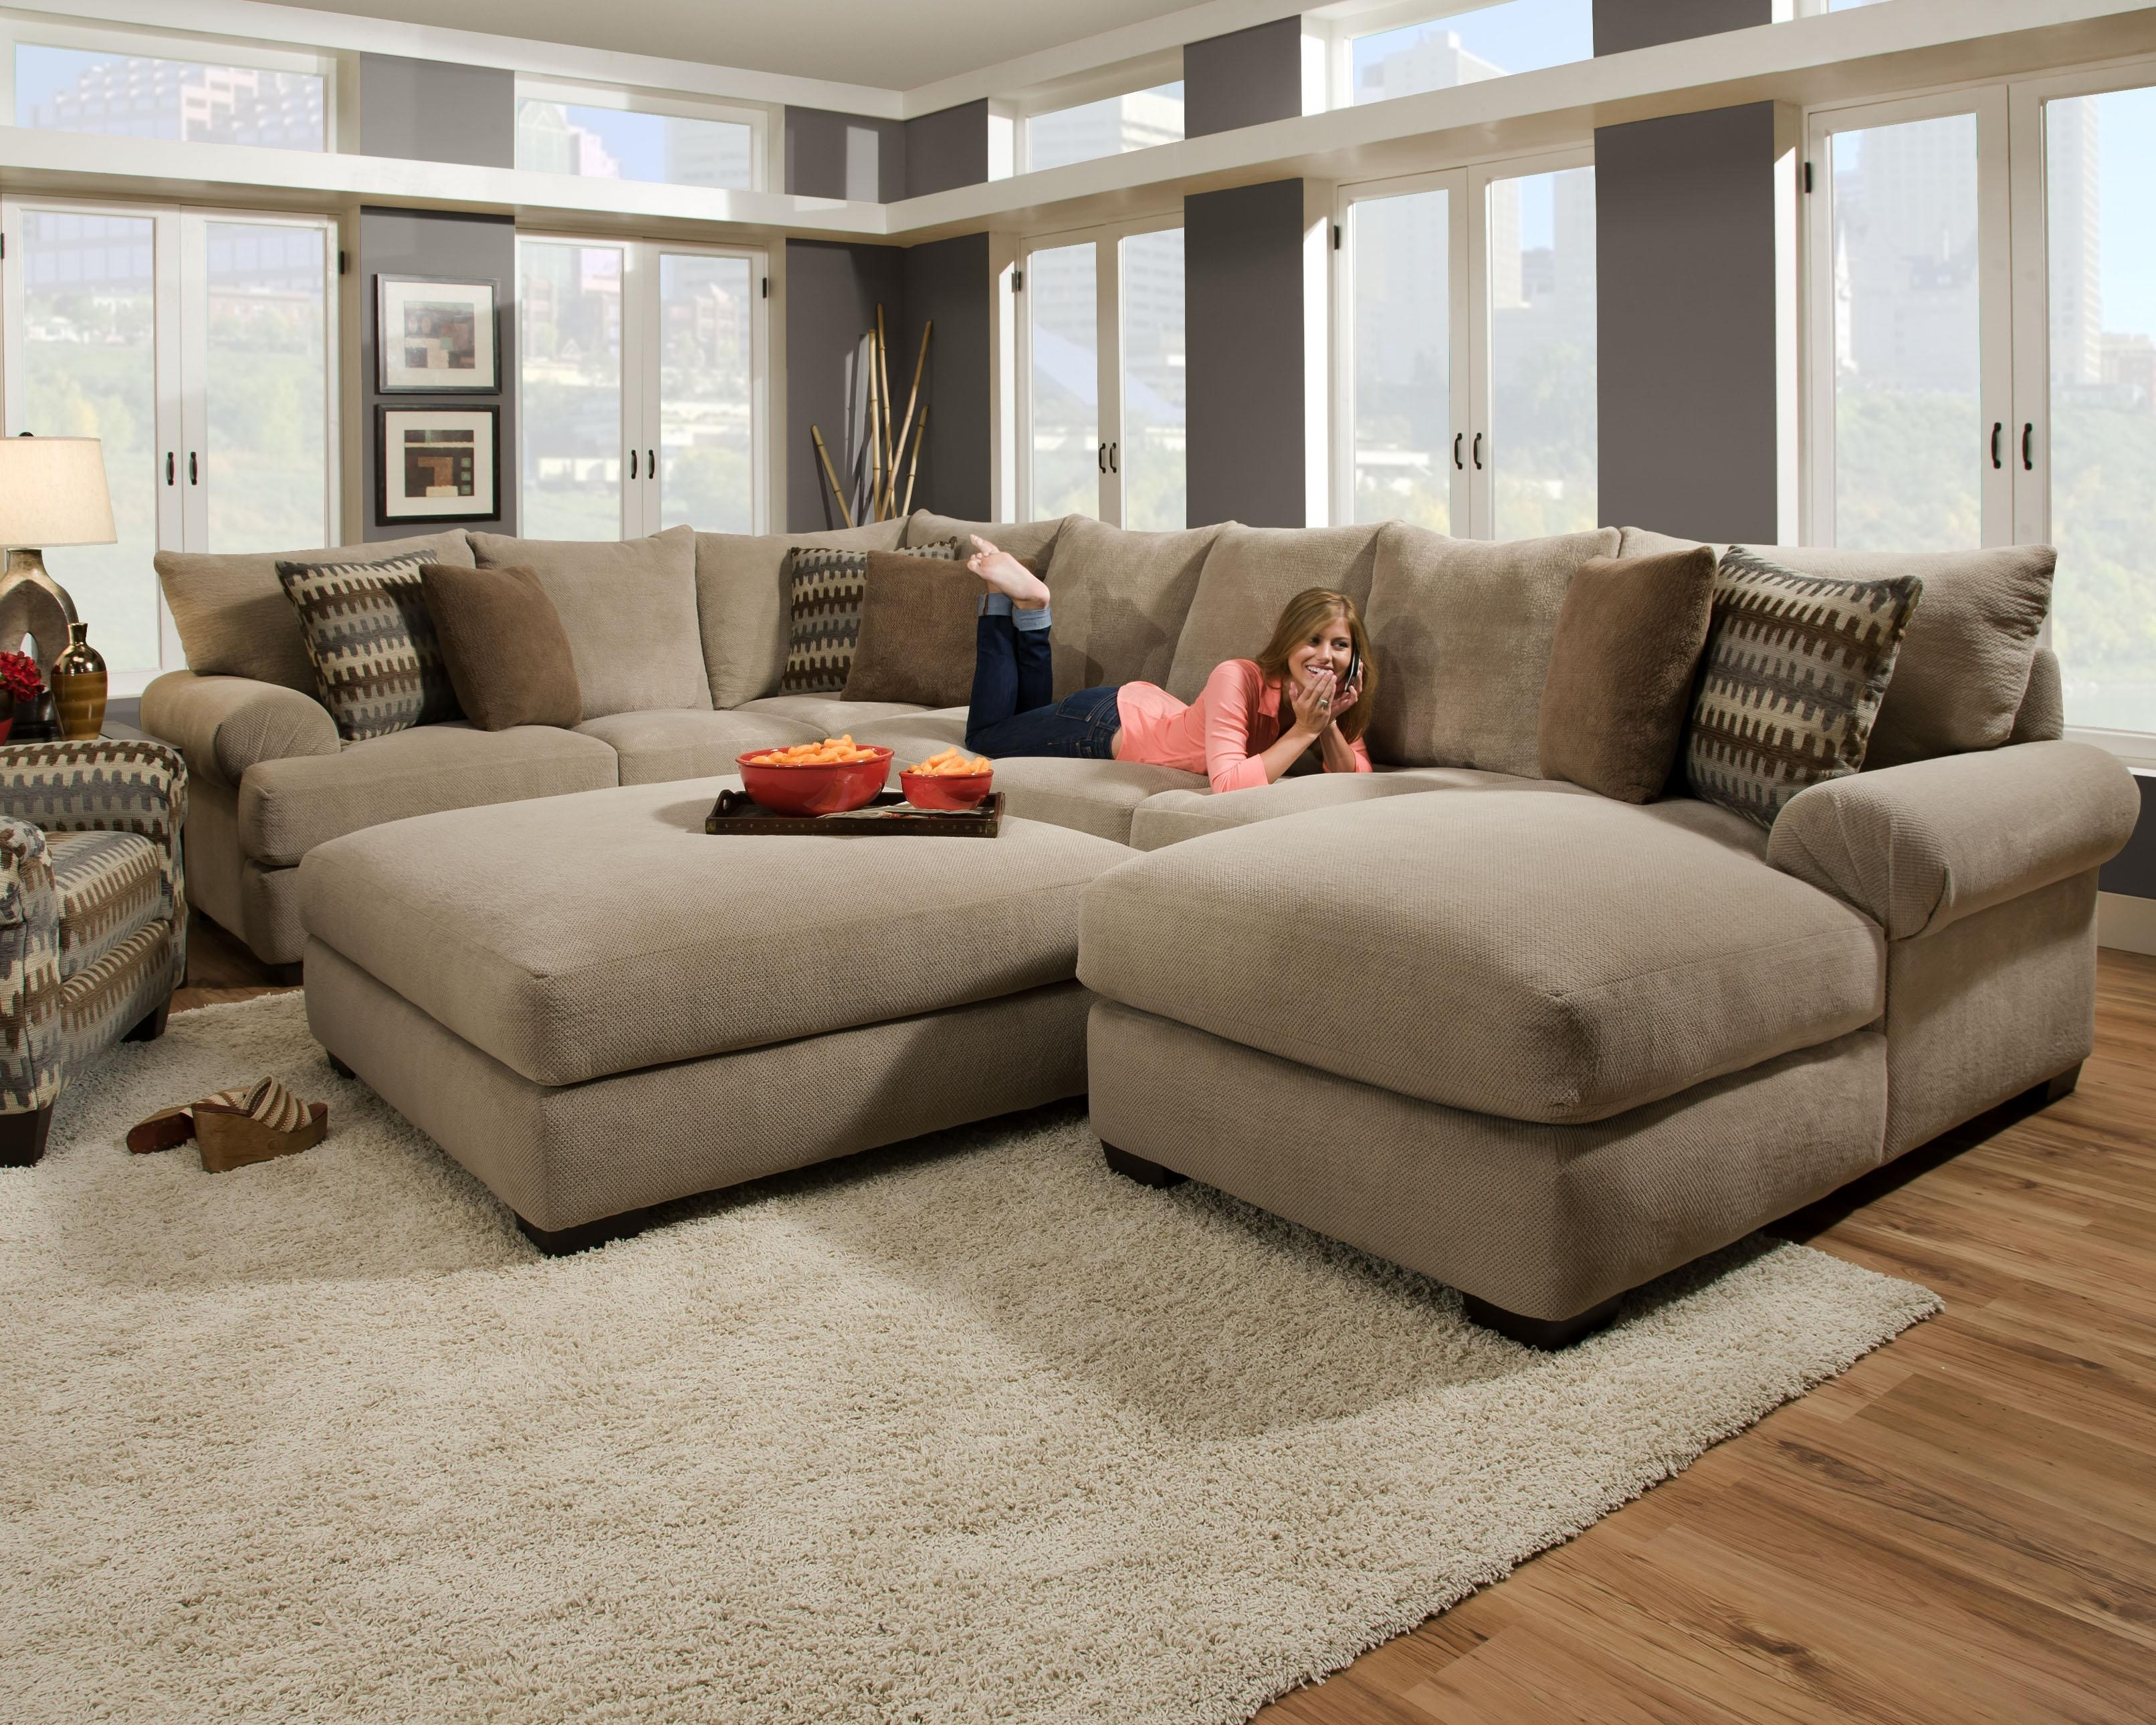 Ontario Canada Sectional Sofas Intended For Preferred Sectional Sofas Under 1000 – Home Design Ideas And Pictures (View 11 of 15)